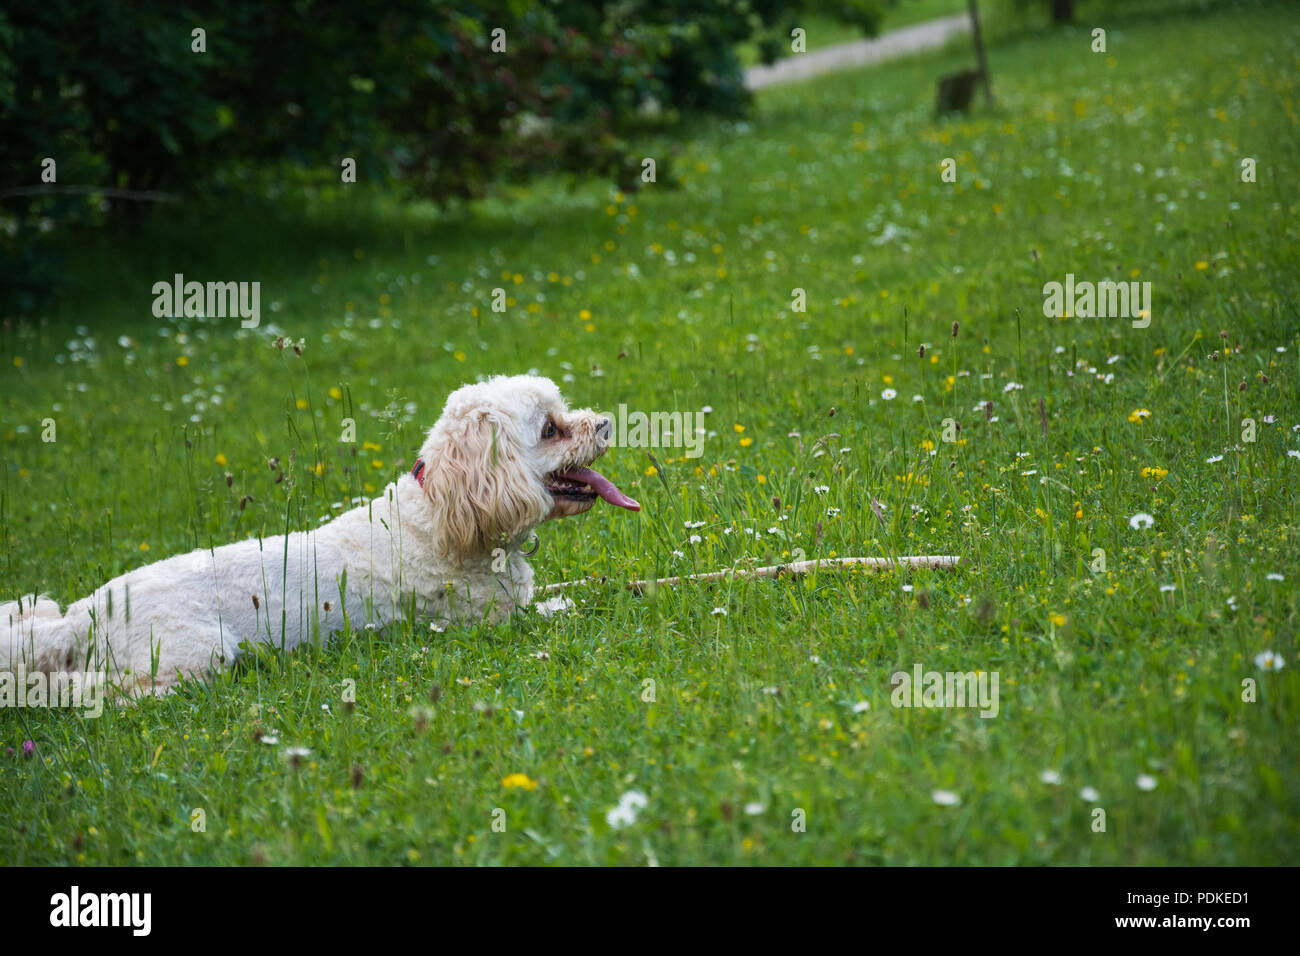 A Cavachon (Canis lupus familiaris) panting and resting outdoors after chasing a stick. - Stock Image